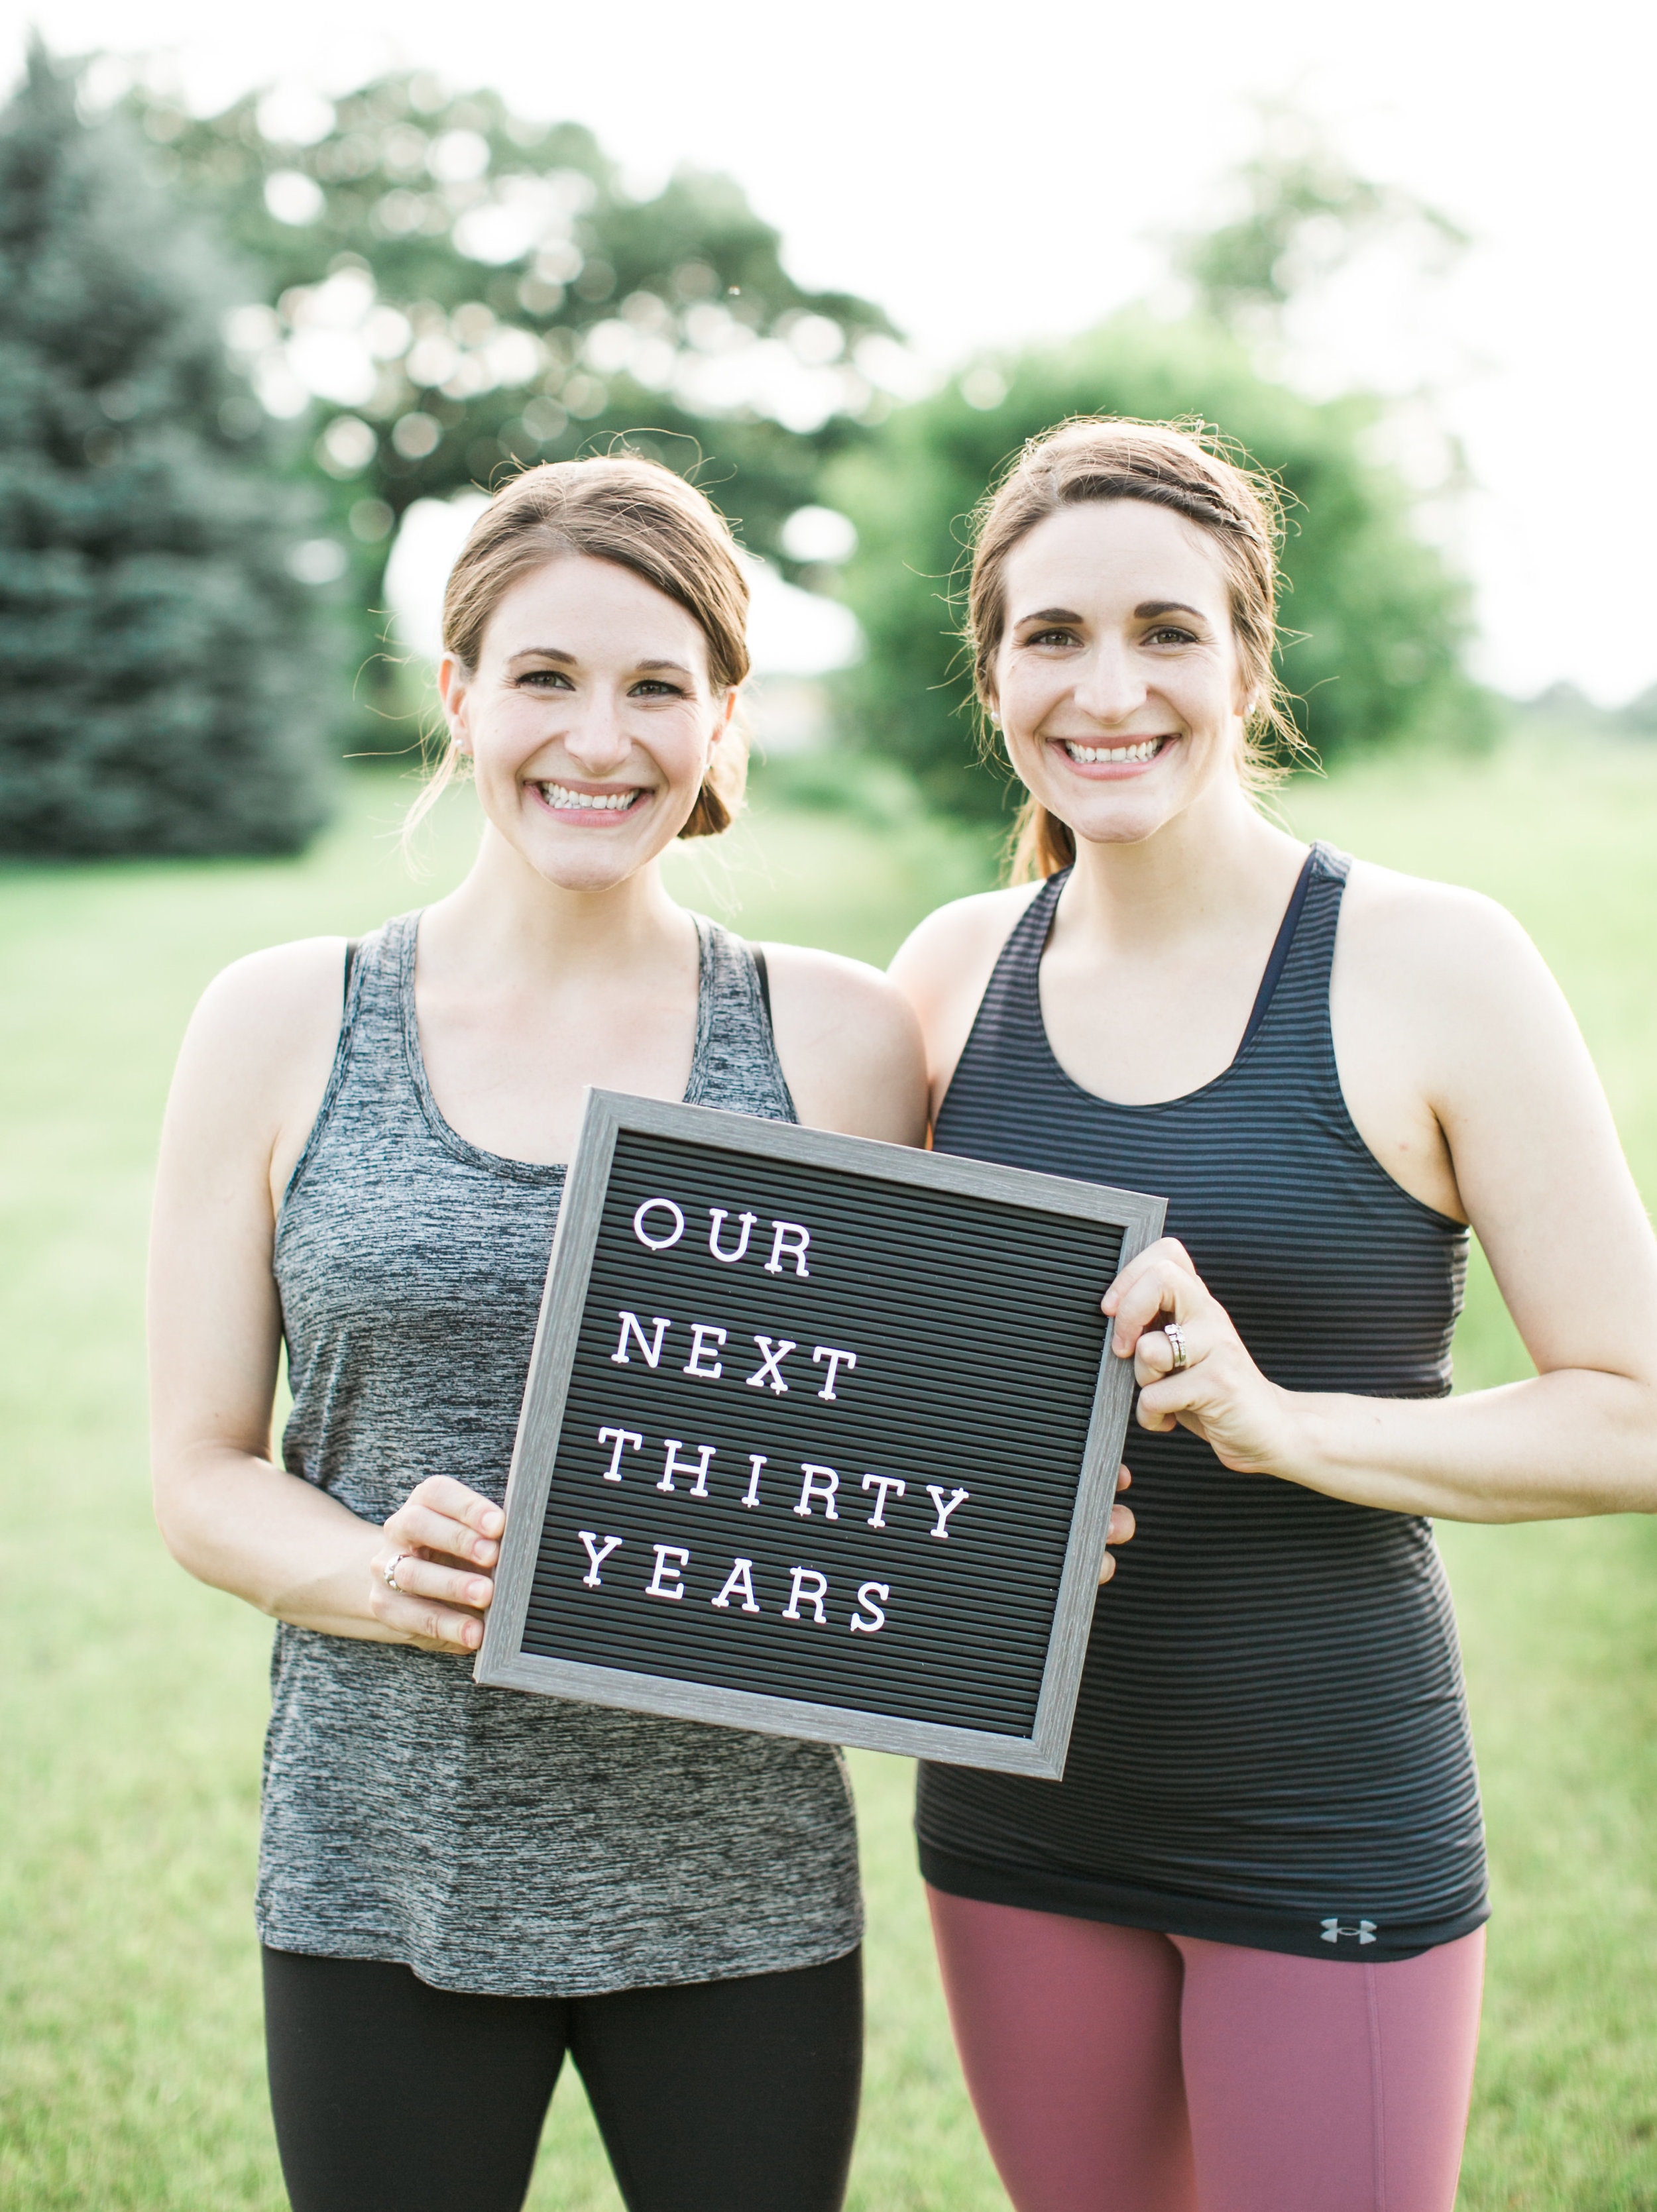 See, we're excited to turn 30! Photo by  ERin Jean Photography